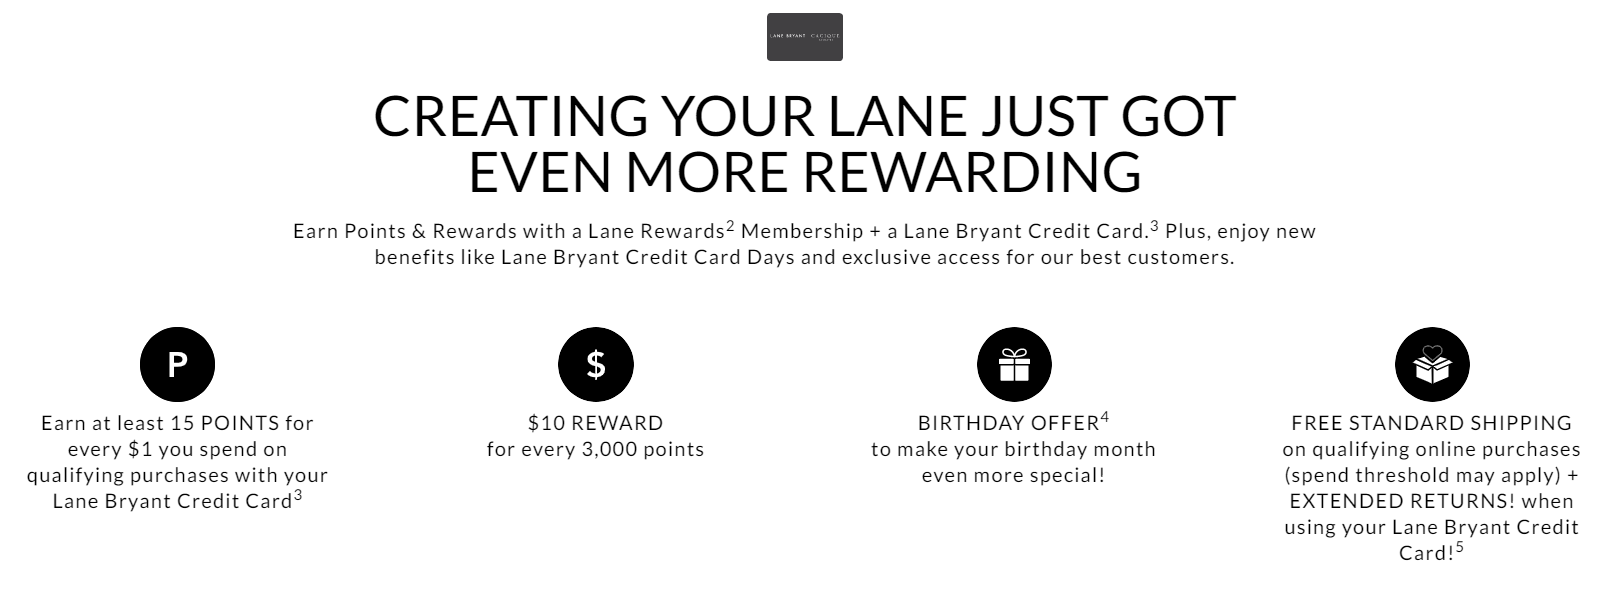 lane-bryant-card-rewards